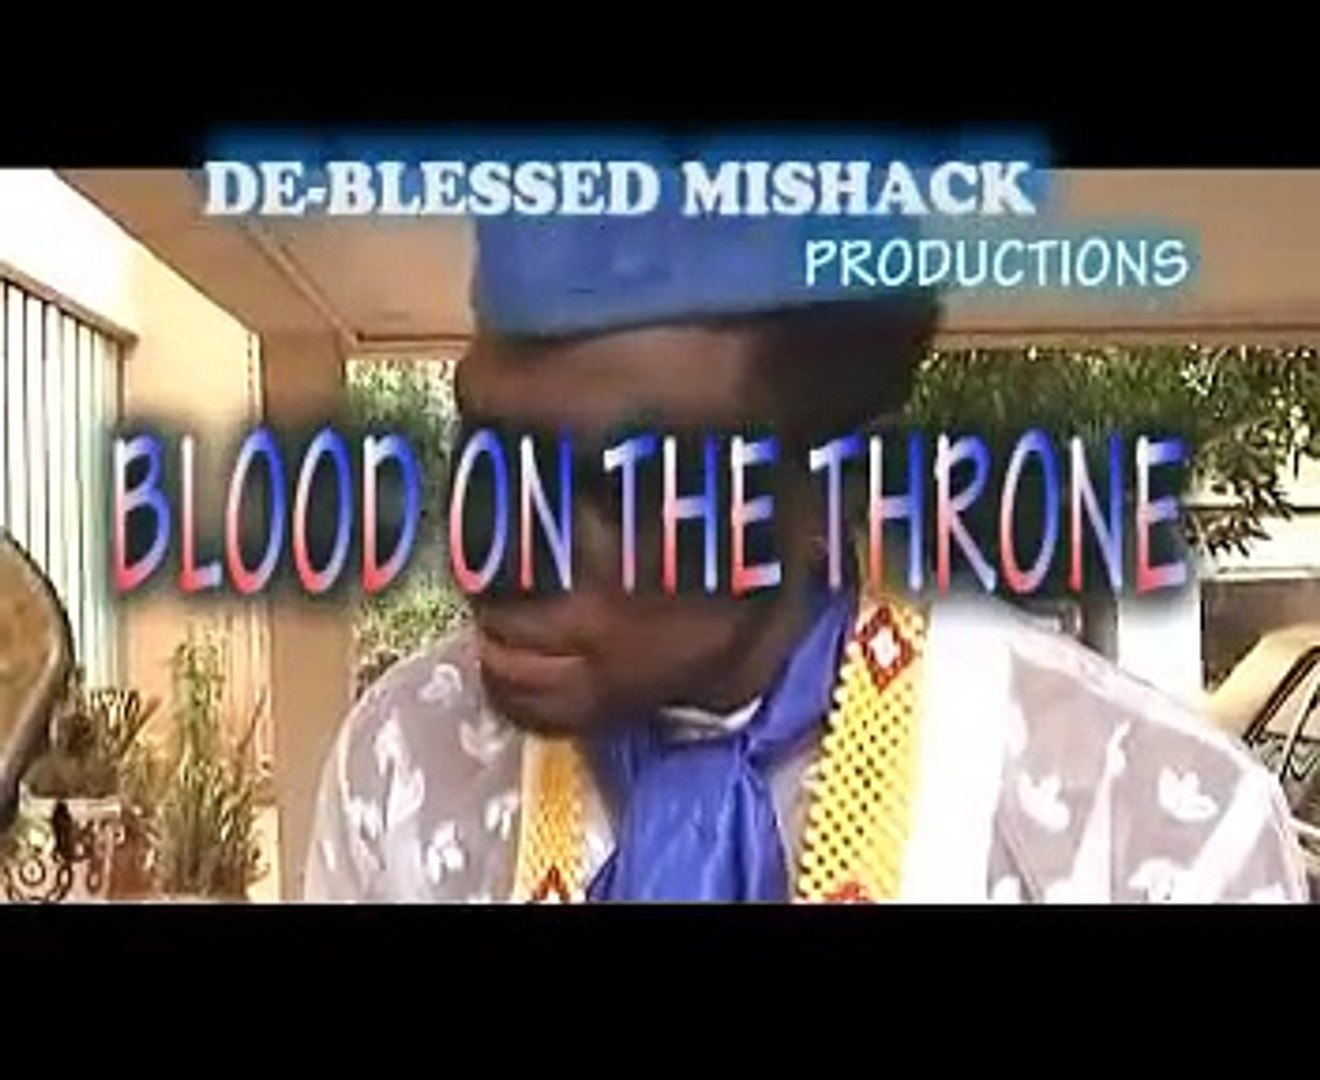 BLOOD ON THE THRONE TRAILER - LATEST 2014 NIGERIAN NOLLYWOOD MOVIE , Movies HdFull Tv Series action